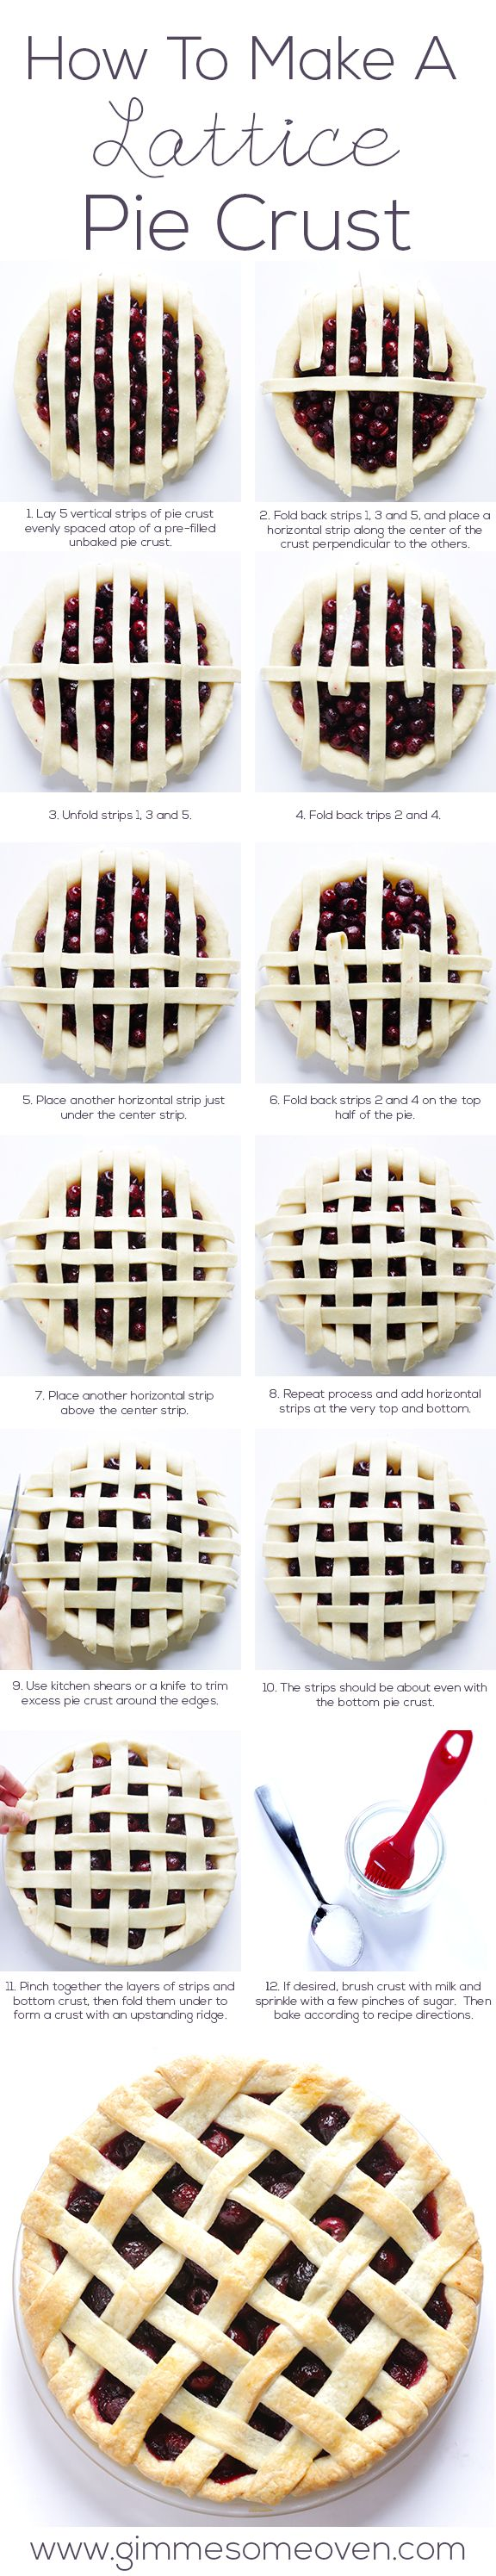 How To Make A Lattice Pie Crust. This looks so much easier than the way I do it. Can't wait to try.